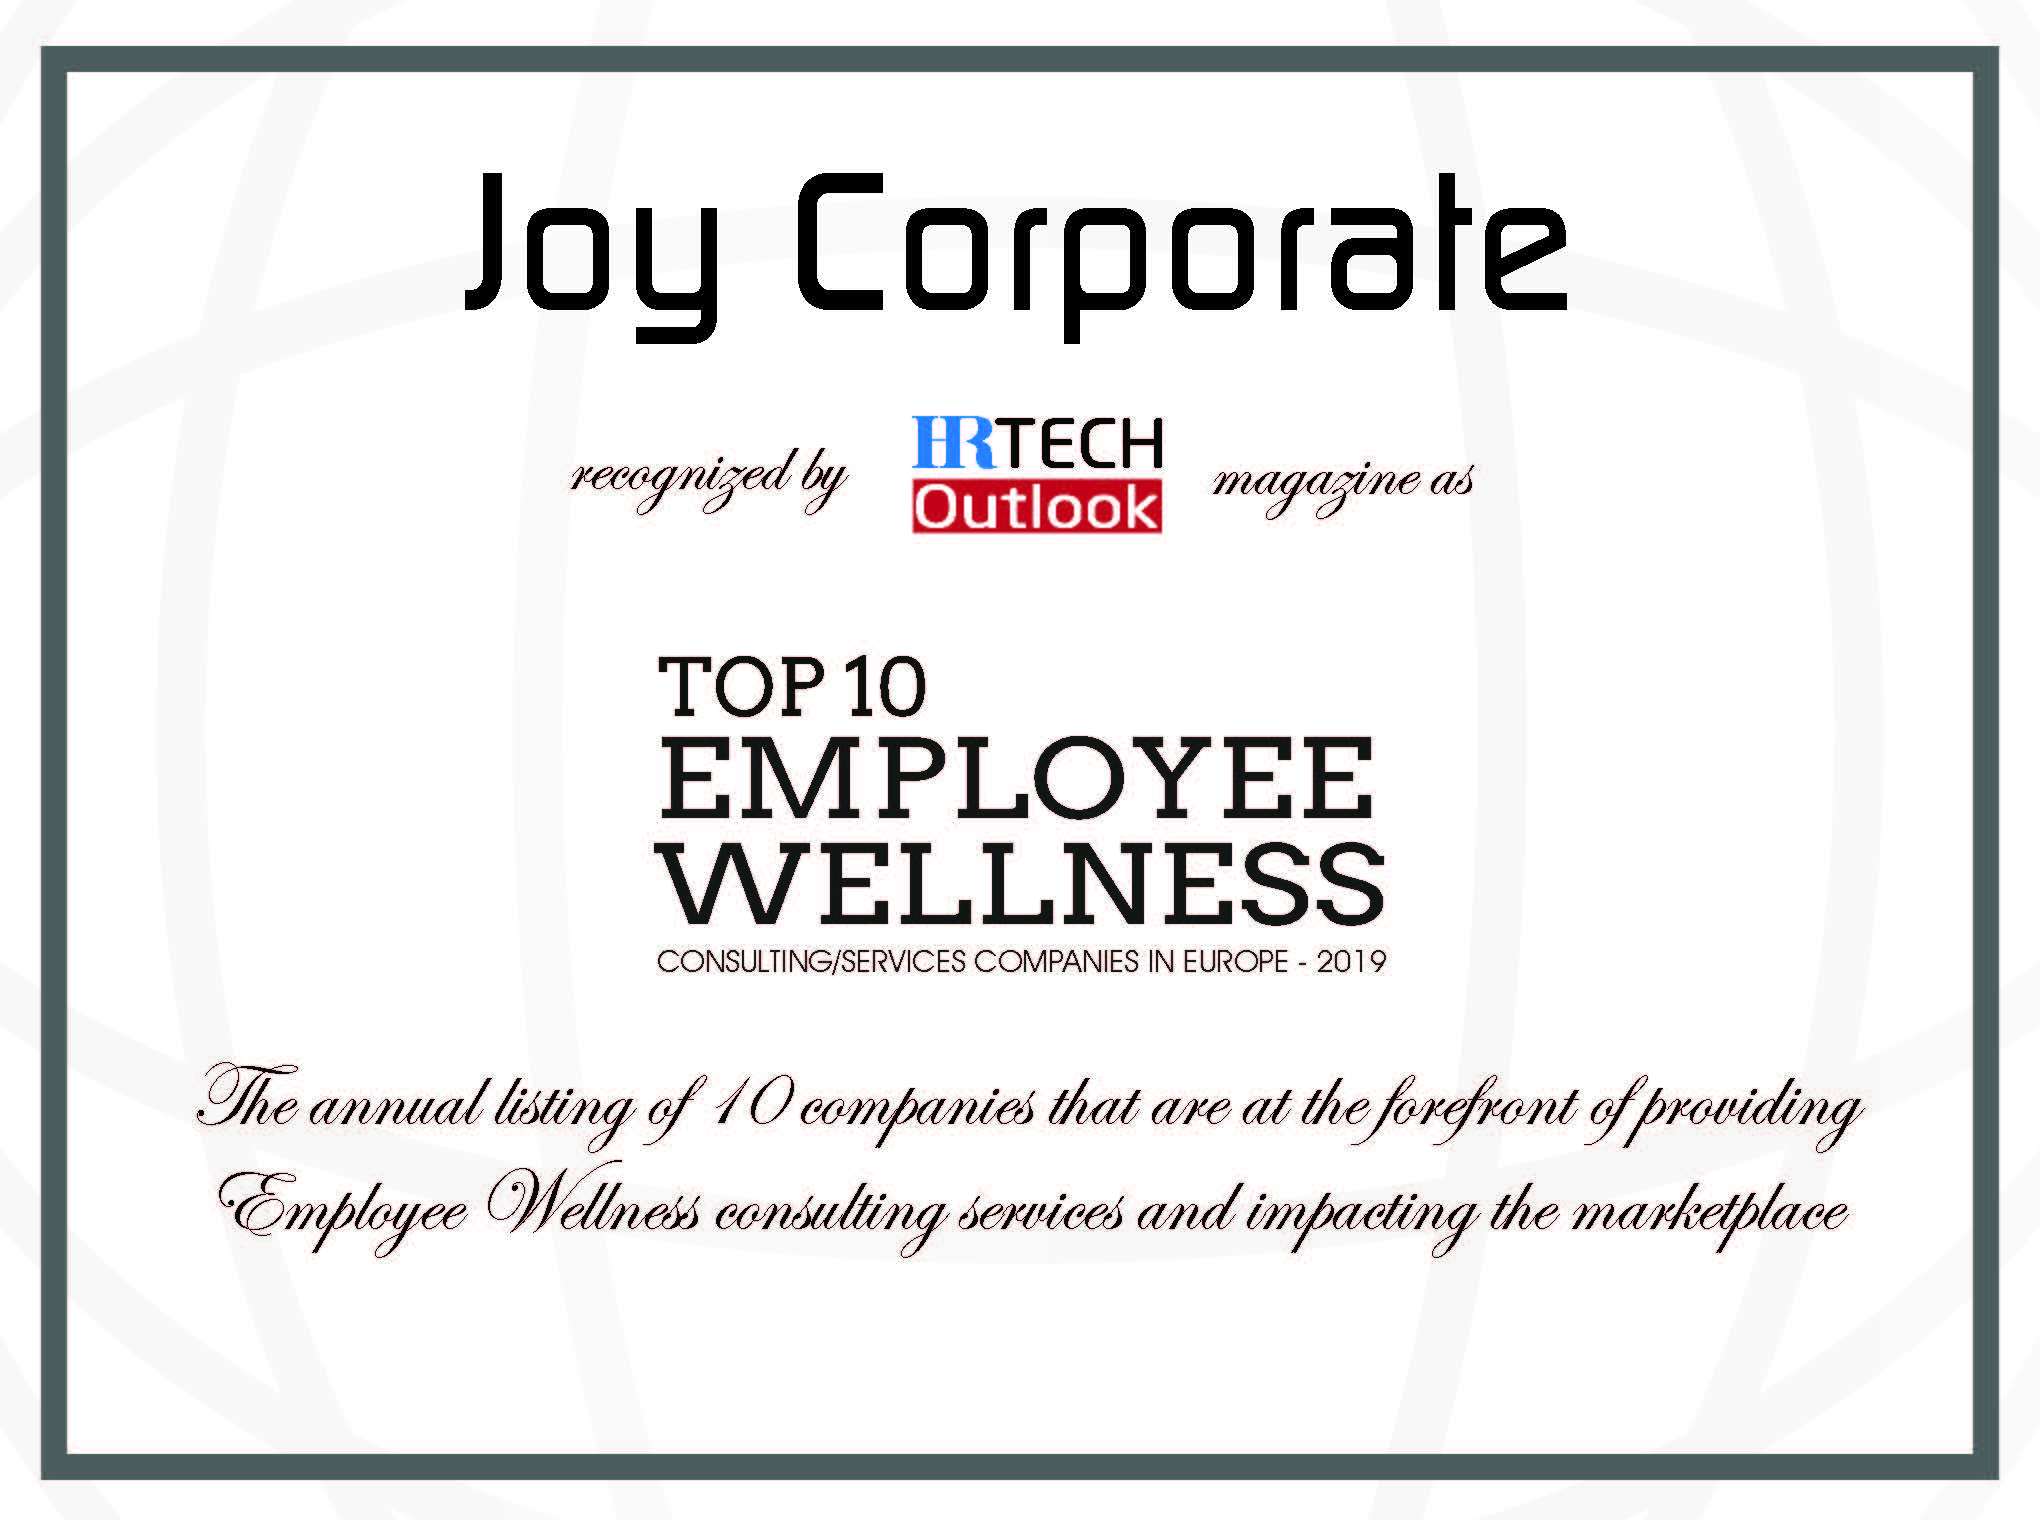 Joy Corporate recognized as TOP 10 Employee Wellness Consulting/Services Companies in Europe!